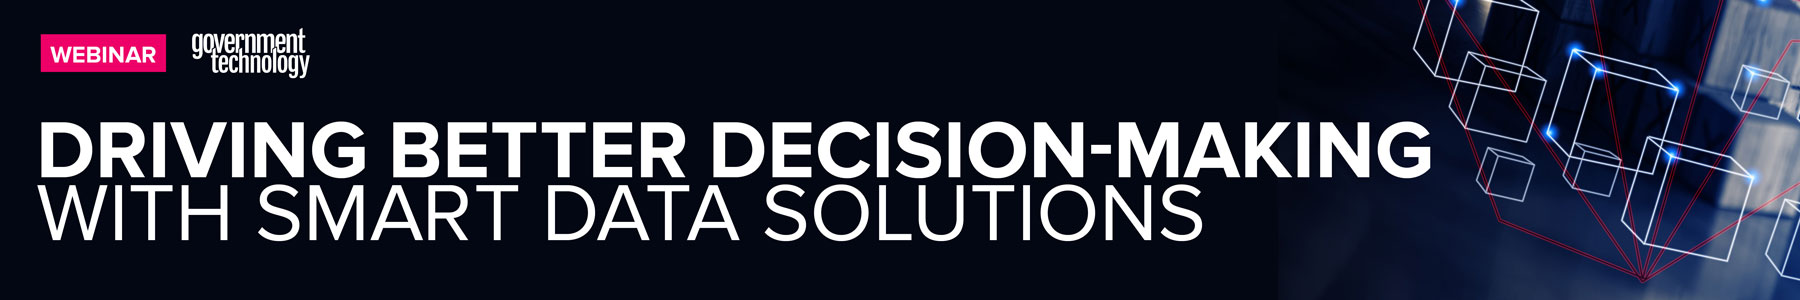 Drive Better Decision-Making with Smart Data Solutions